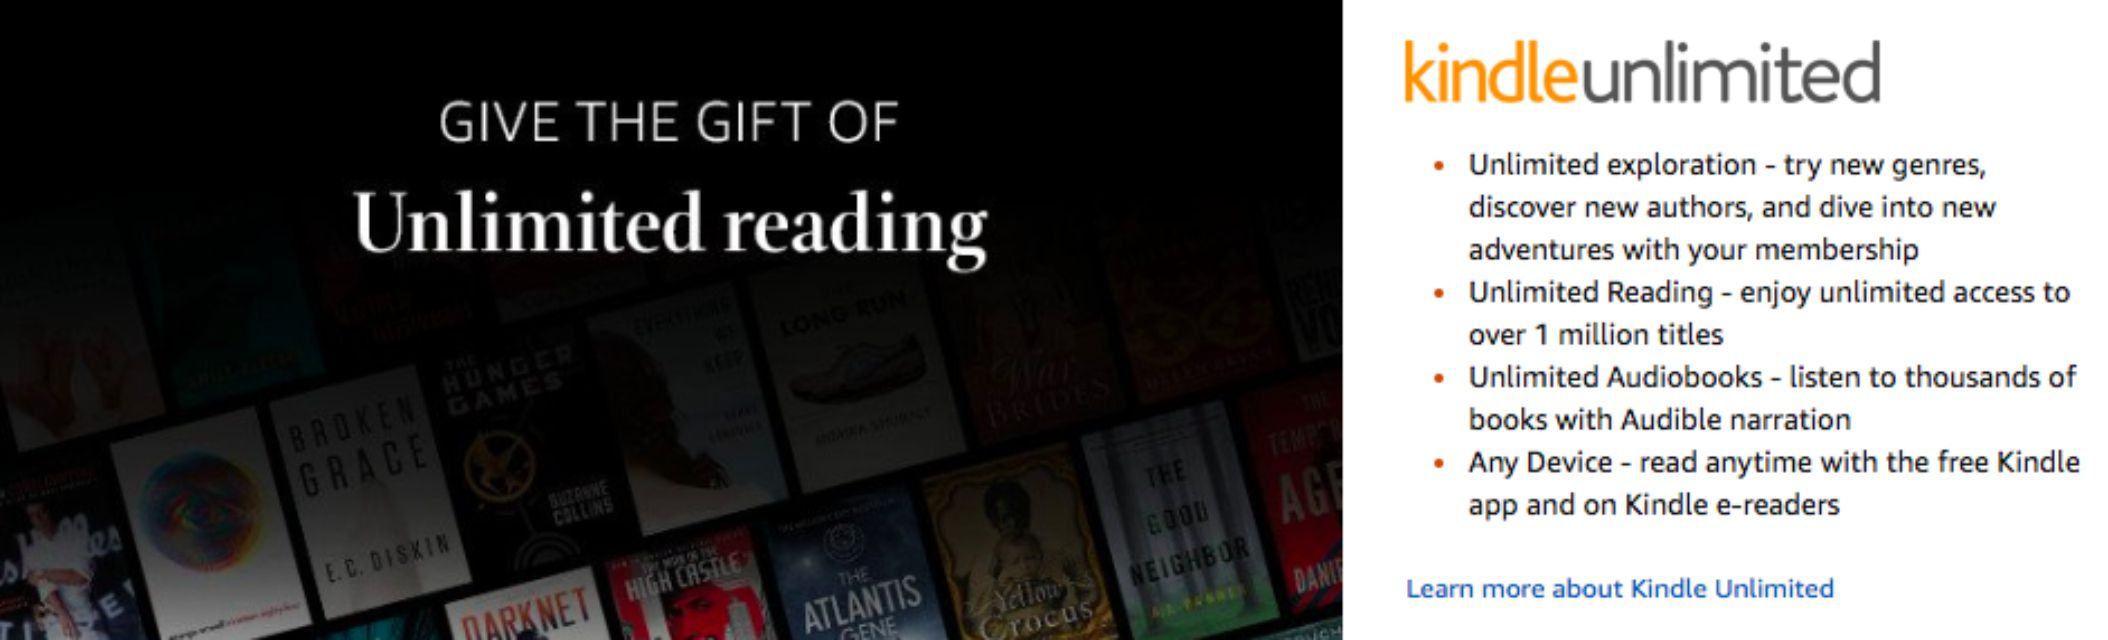 Kindle Unlimited Gift Subscription